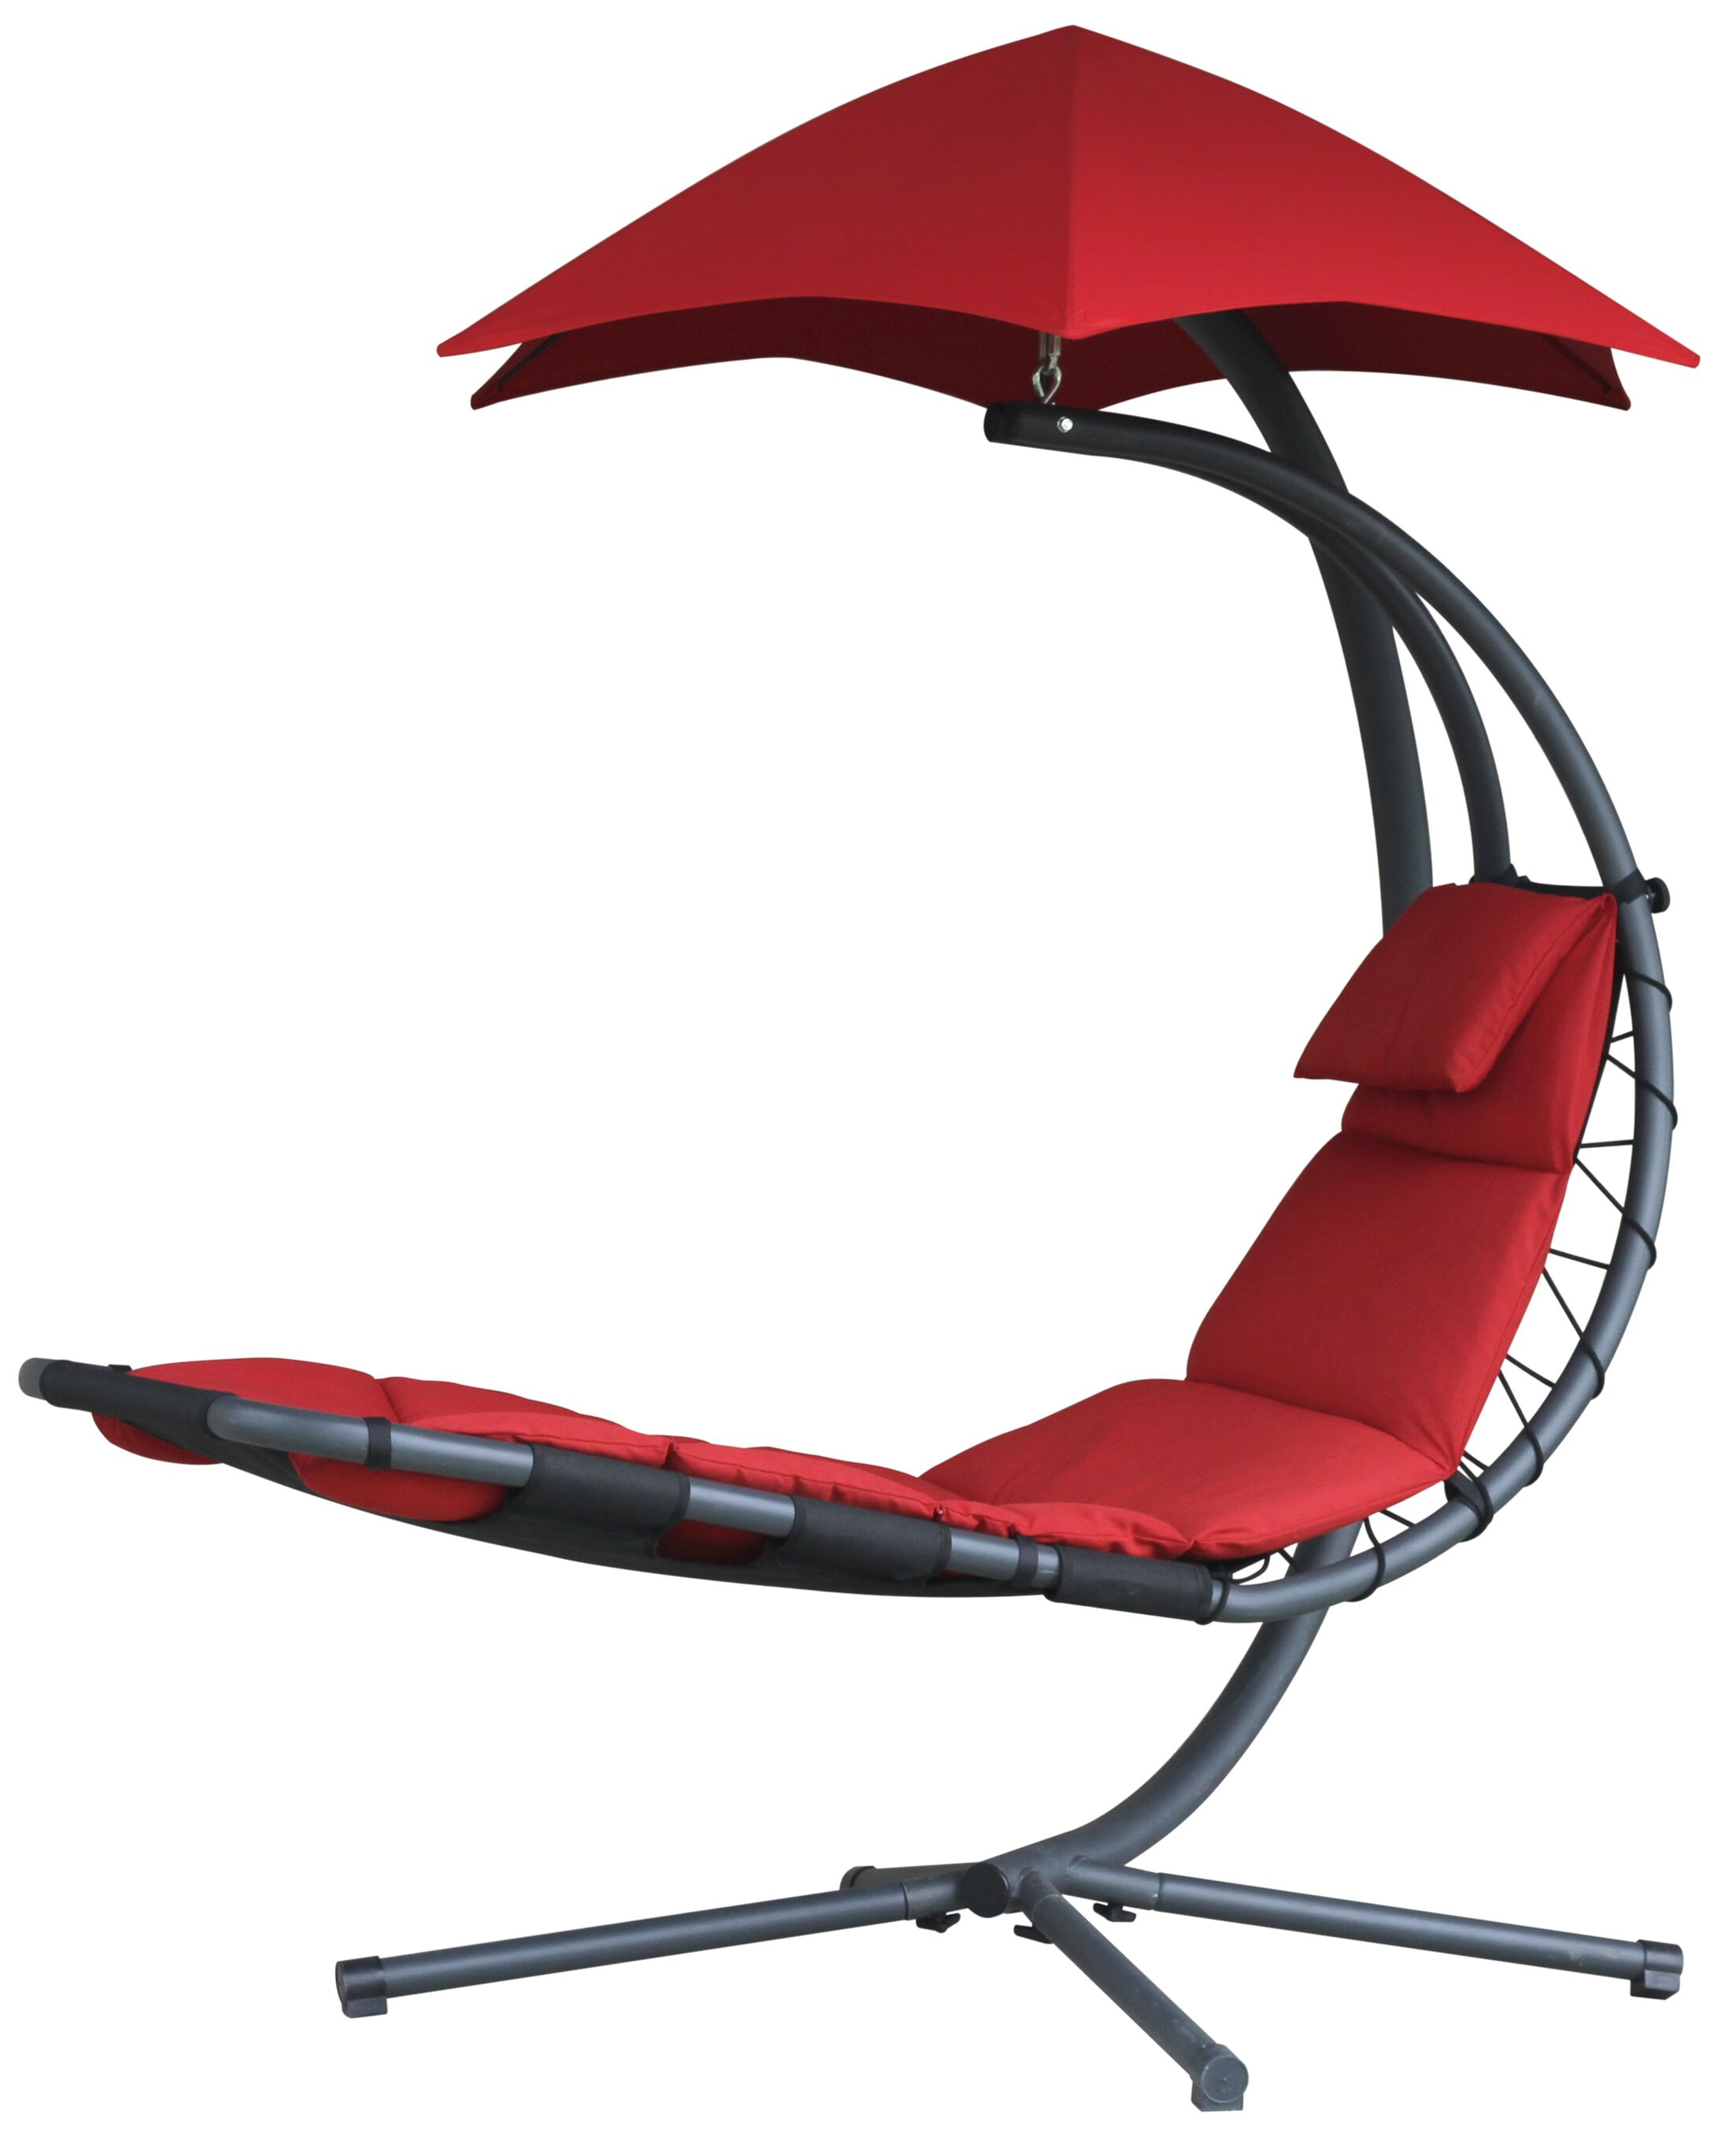 Maglione Hanging Chaise Lounger Color: Cherry Red